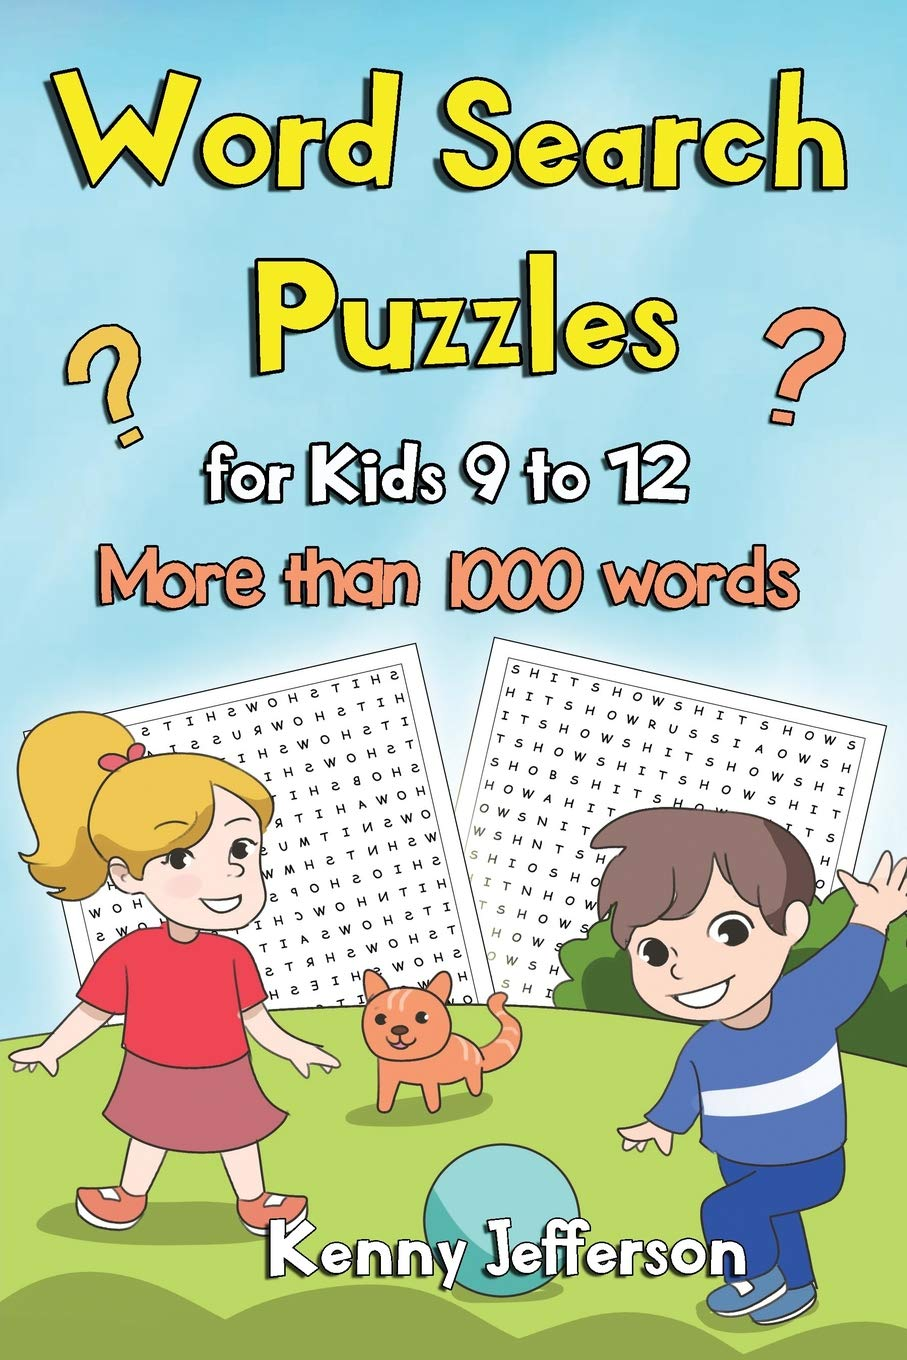 Word Search Puzzles for Kids Ages 9 to 12: More than 1000